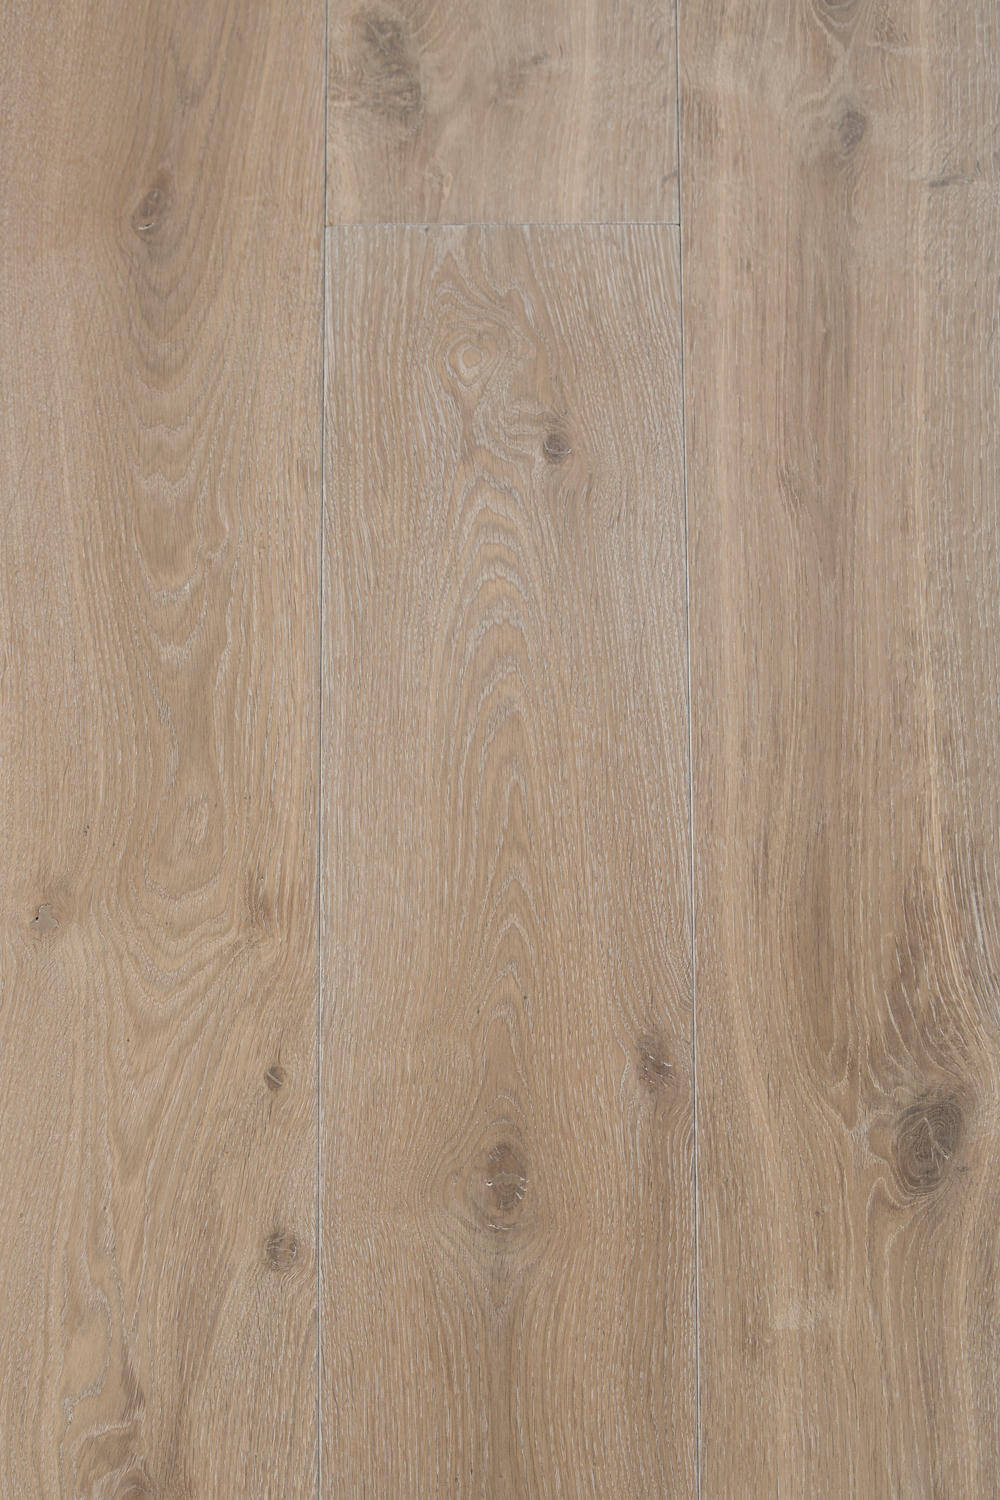 3 Oak Floor Product Slate Grey